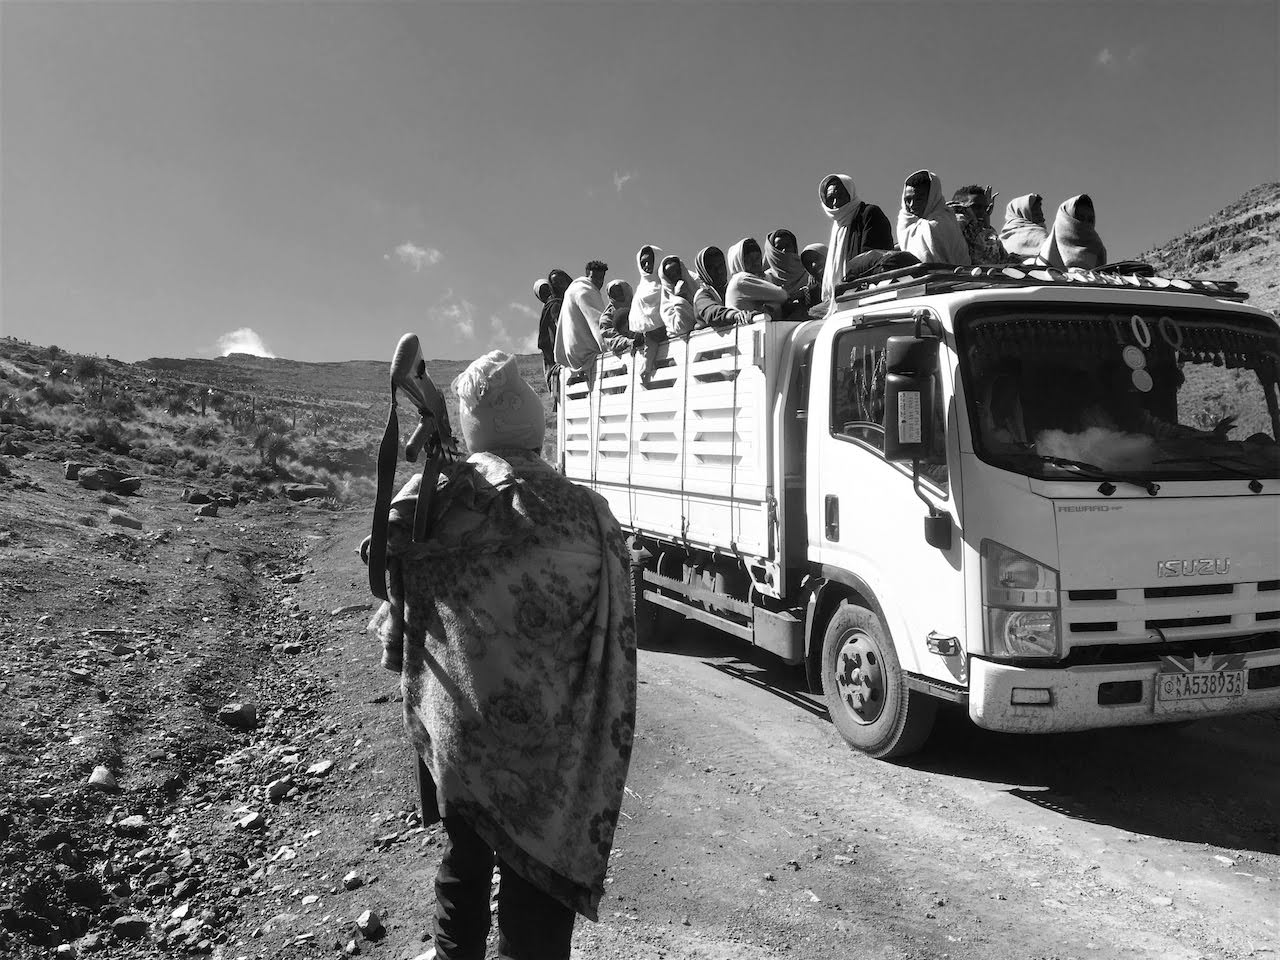 Trekking-Ethiopias-Simien-Mountains-Mafia-AK-47s-and-a-Park-at-Risk-scout-truck